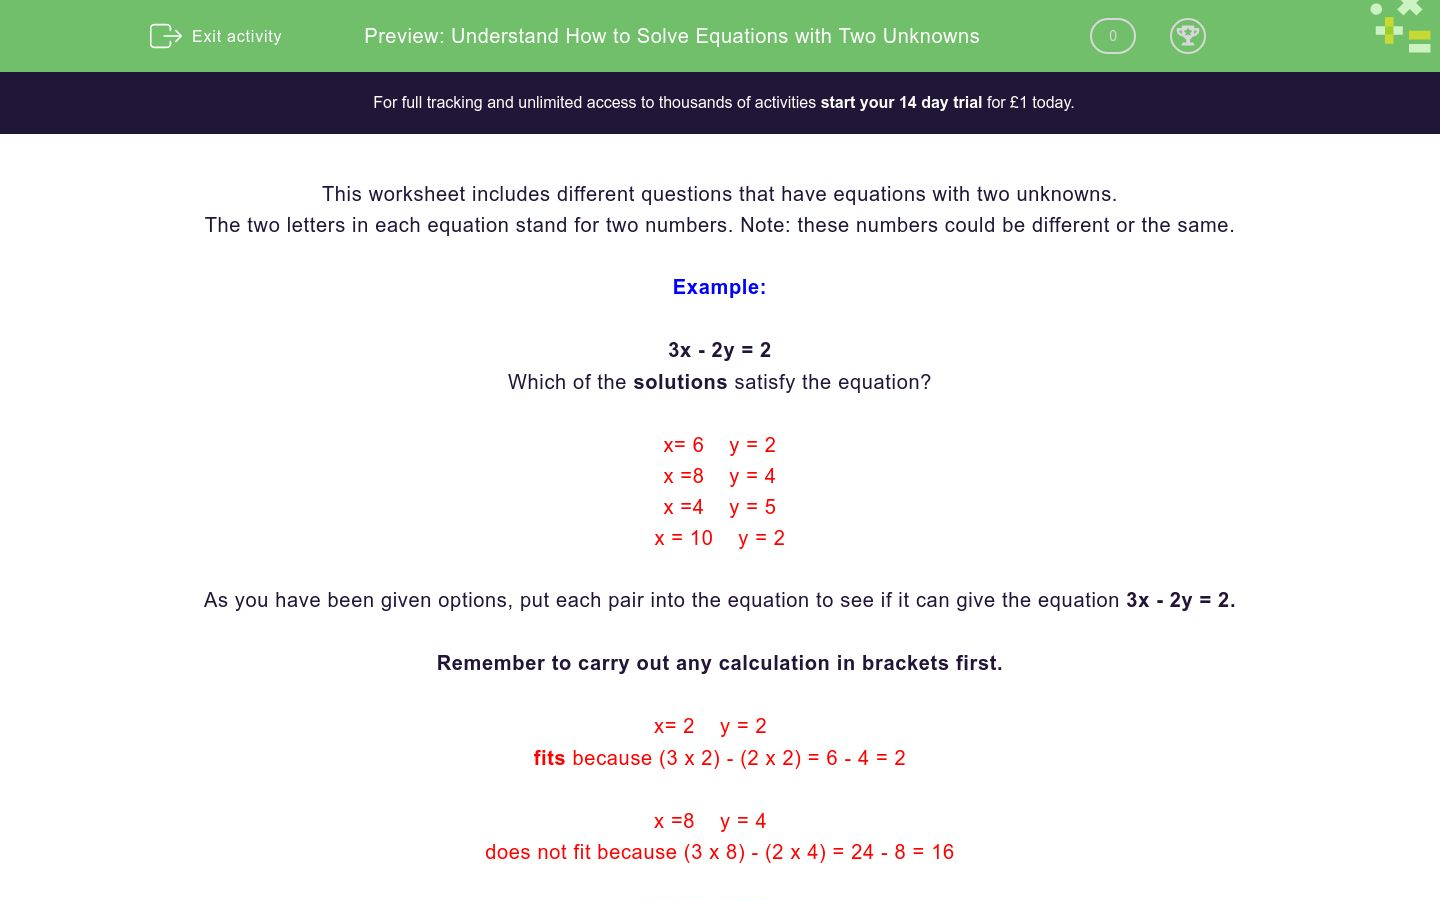 'Understand How to Solve Equations with Two Unknowns' worksheet